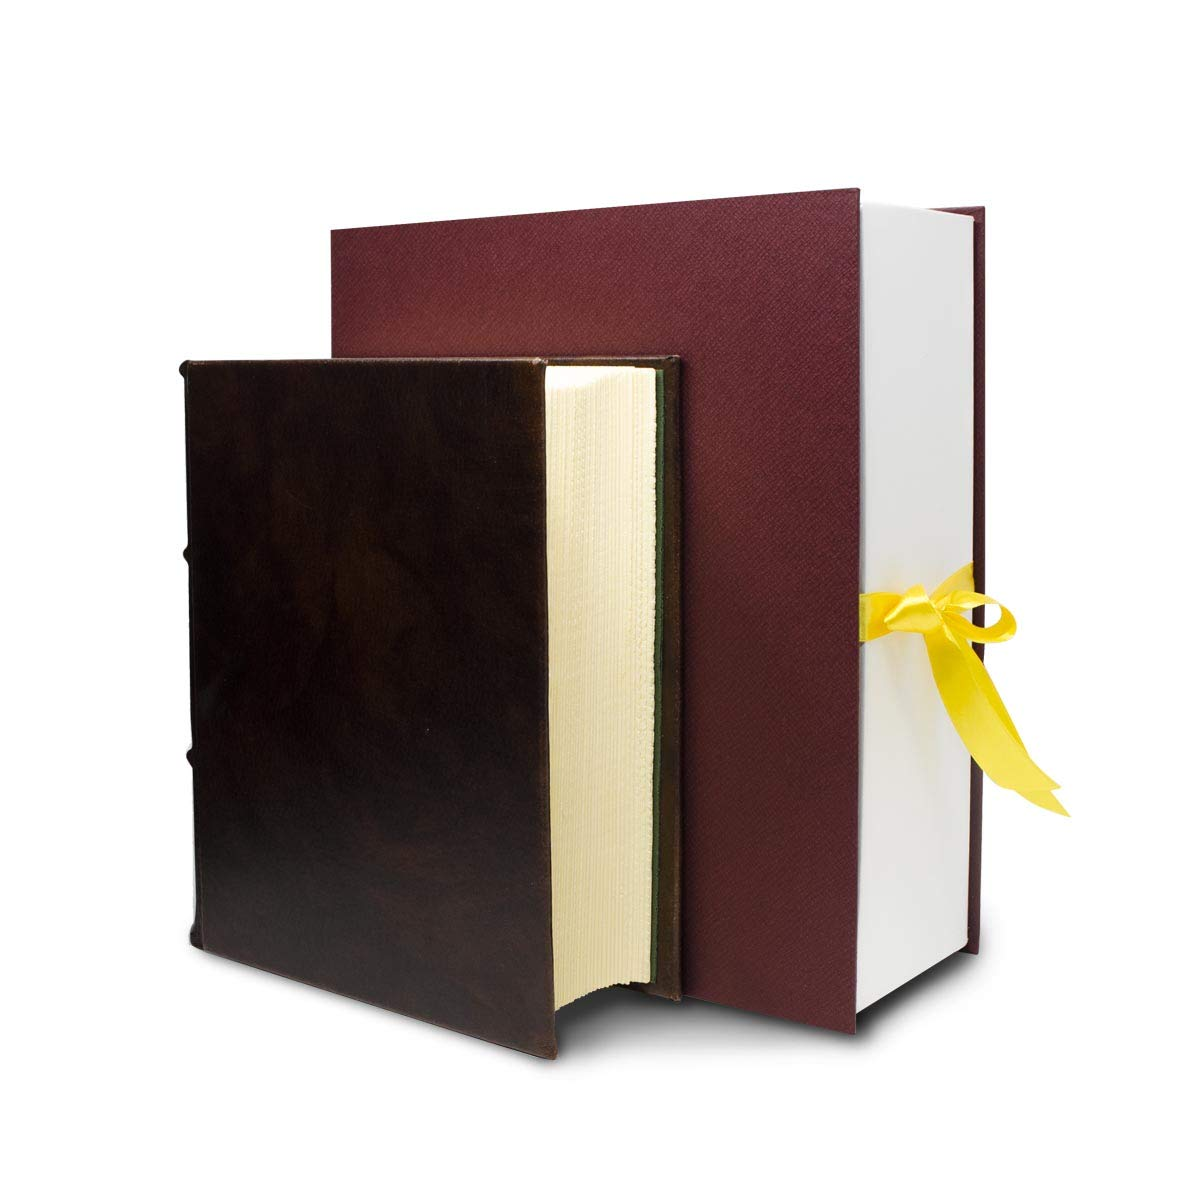 WORLD'S THICKEST JOURNAL with over 1000 Hand-Cut archival writing/drawing pages. Handmade in Premium Italian Leather. 8x10in | Epica